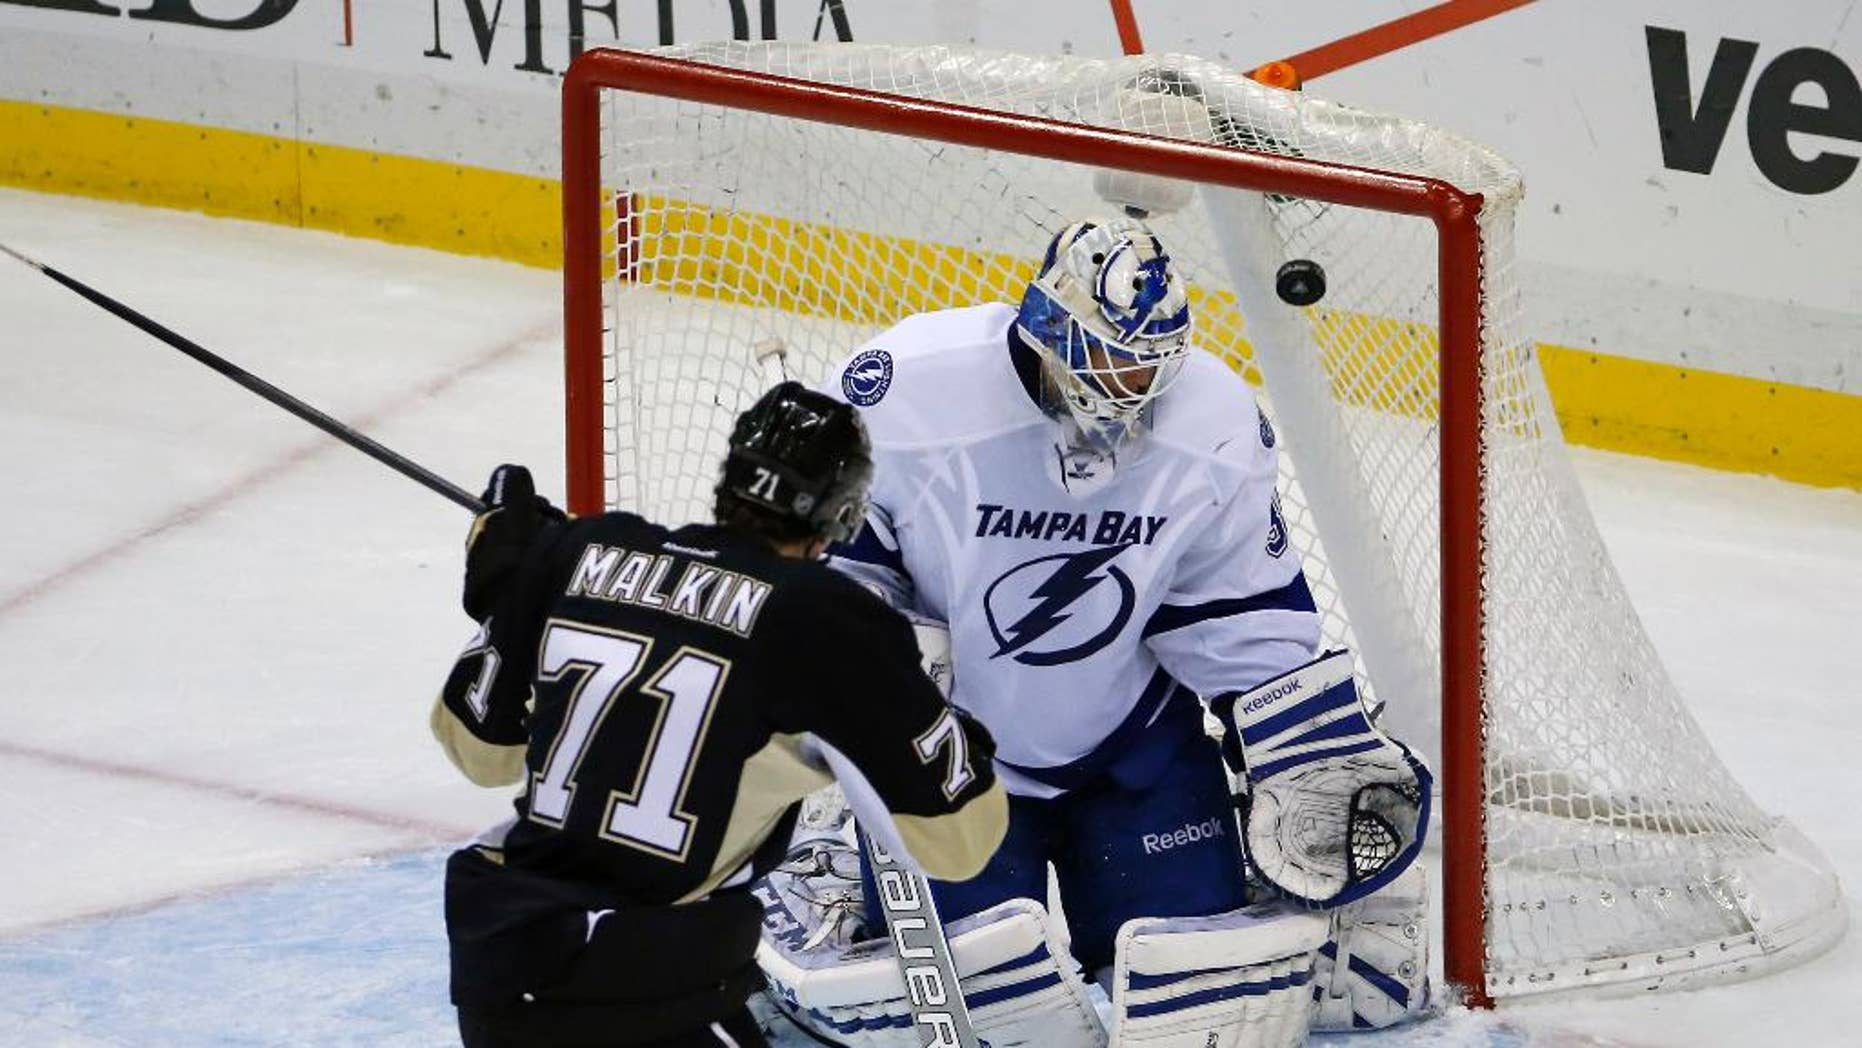 Pittsburgh Penguins' Evgeni Malkin (71) backhands a shot over Tampa Bay Lightning goalie Anders Lindback (39) for a goal in the third period of an NHL hockey game in Pittsburgh, Saturday, March 22, 2014. The Penguins won 4-3 in overtime. (AP Photo/Gene J. Puskar)